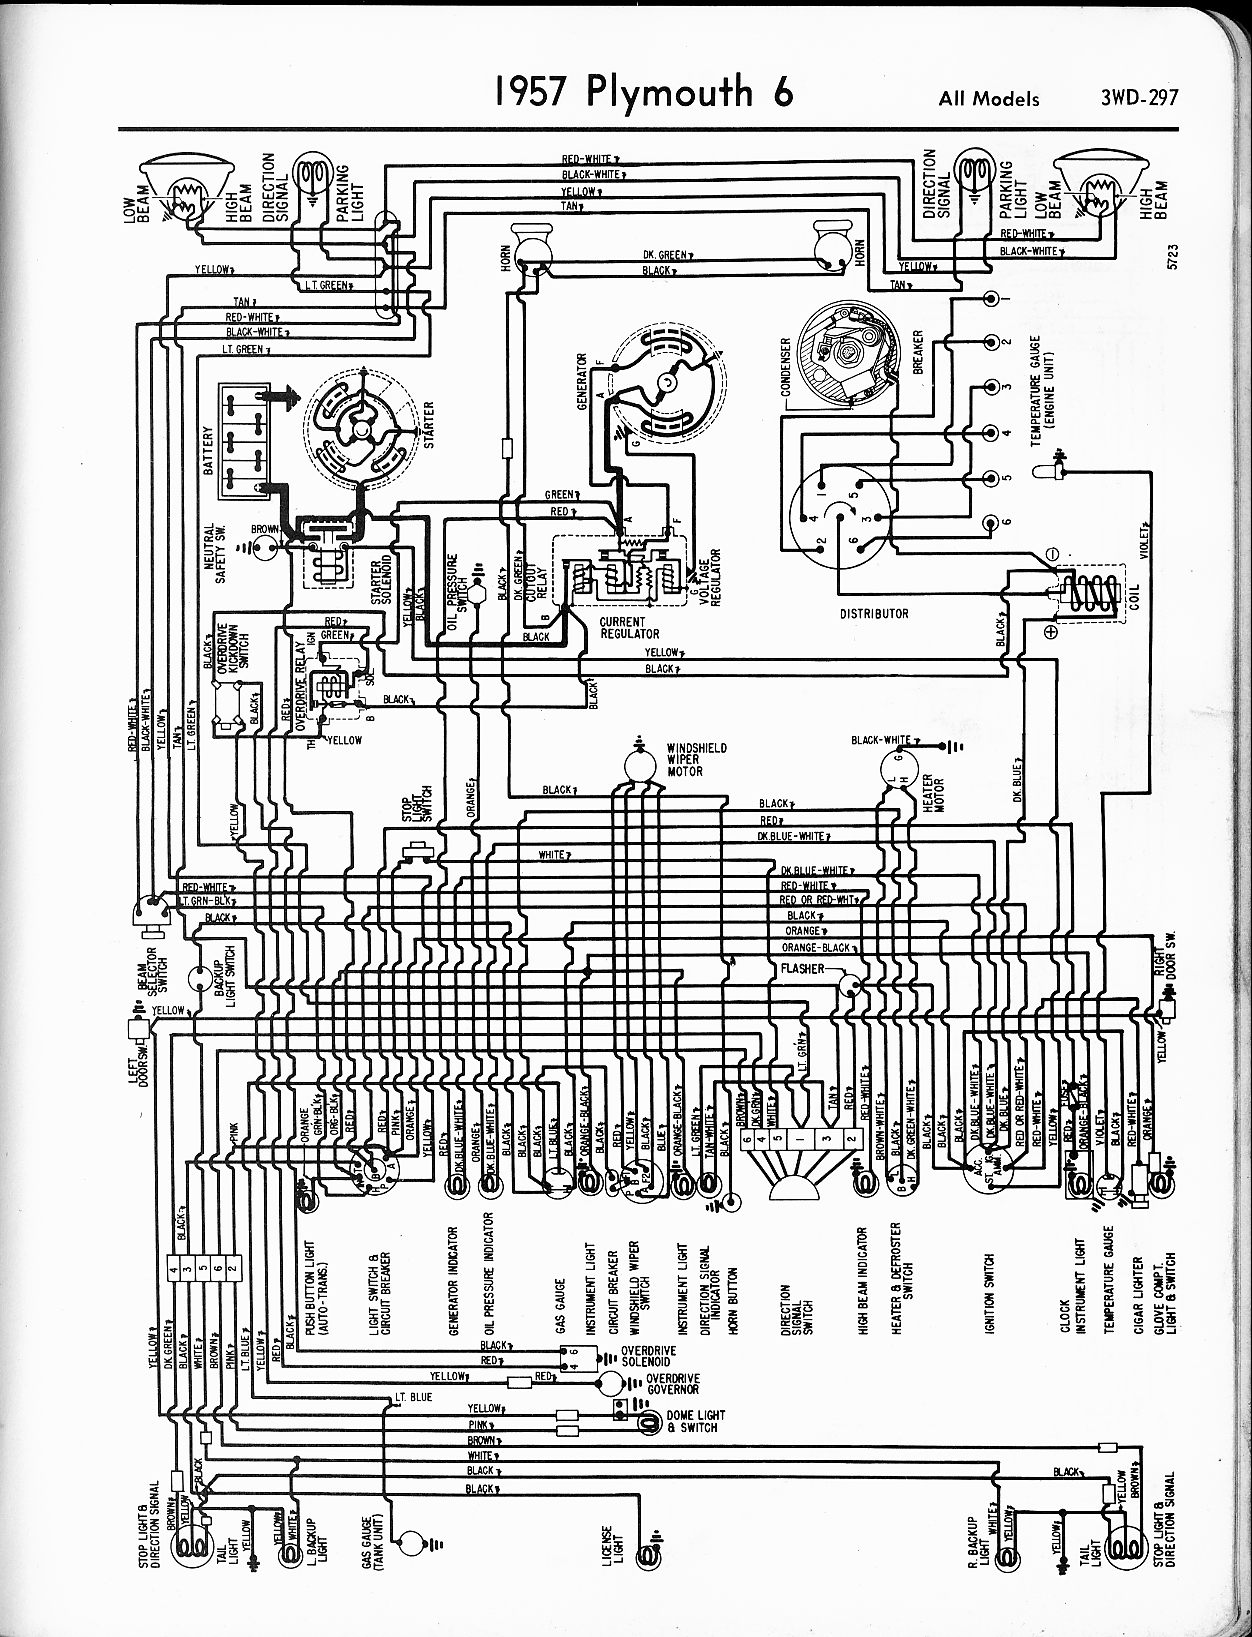 1967 plymouth satellite wiring diagram everything wiring diagram1967 plymouth wiring diagram wiring diagram data schema 1967 plymouth satellite wiring diagram 1967 plymouth satellite wiring diagram